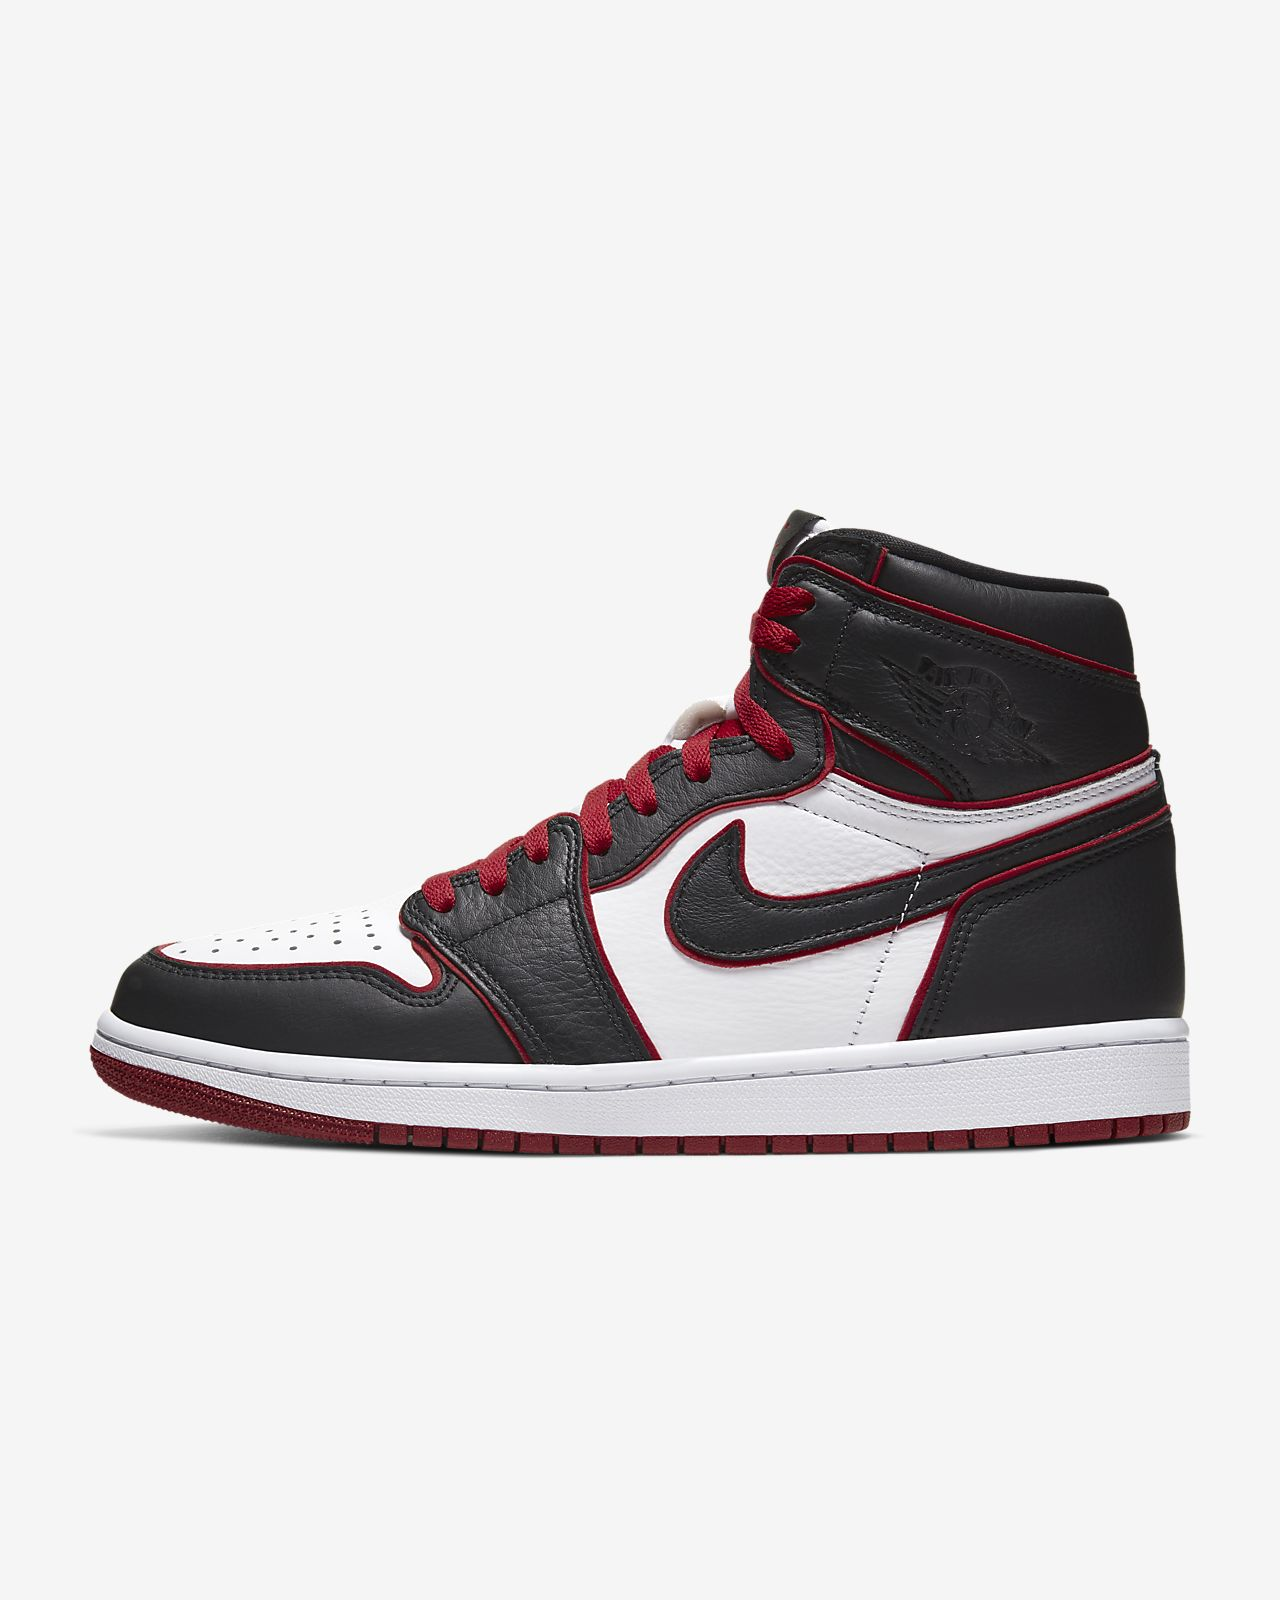 nike air jordan noir et or